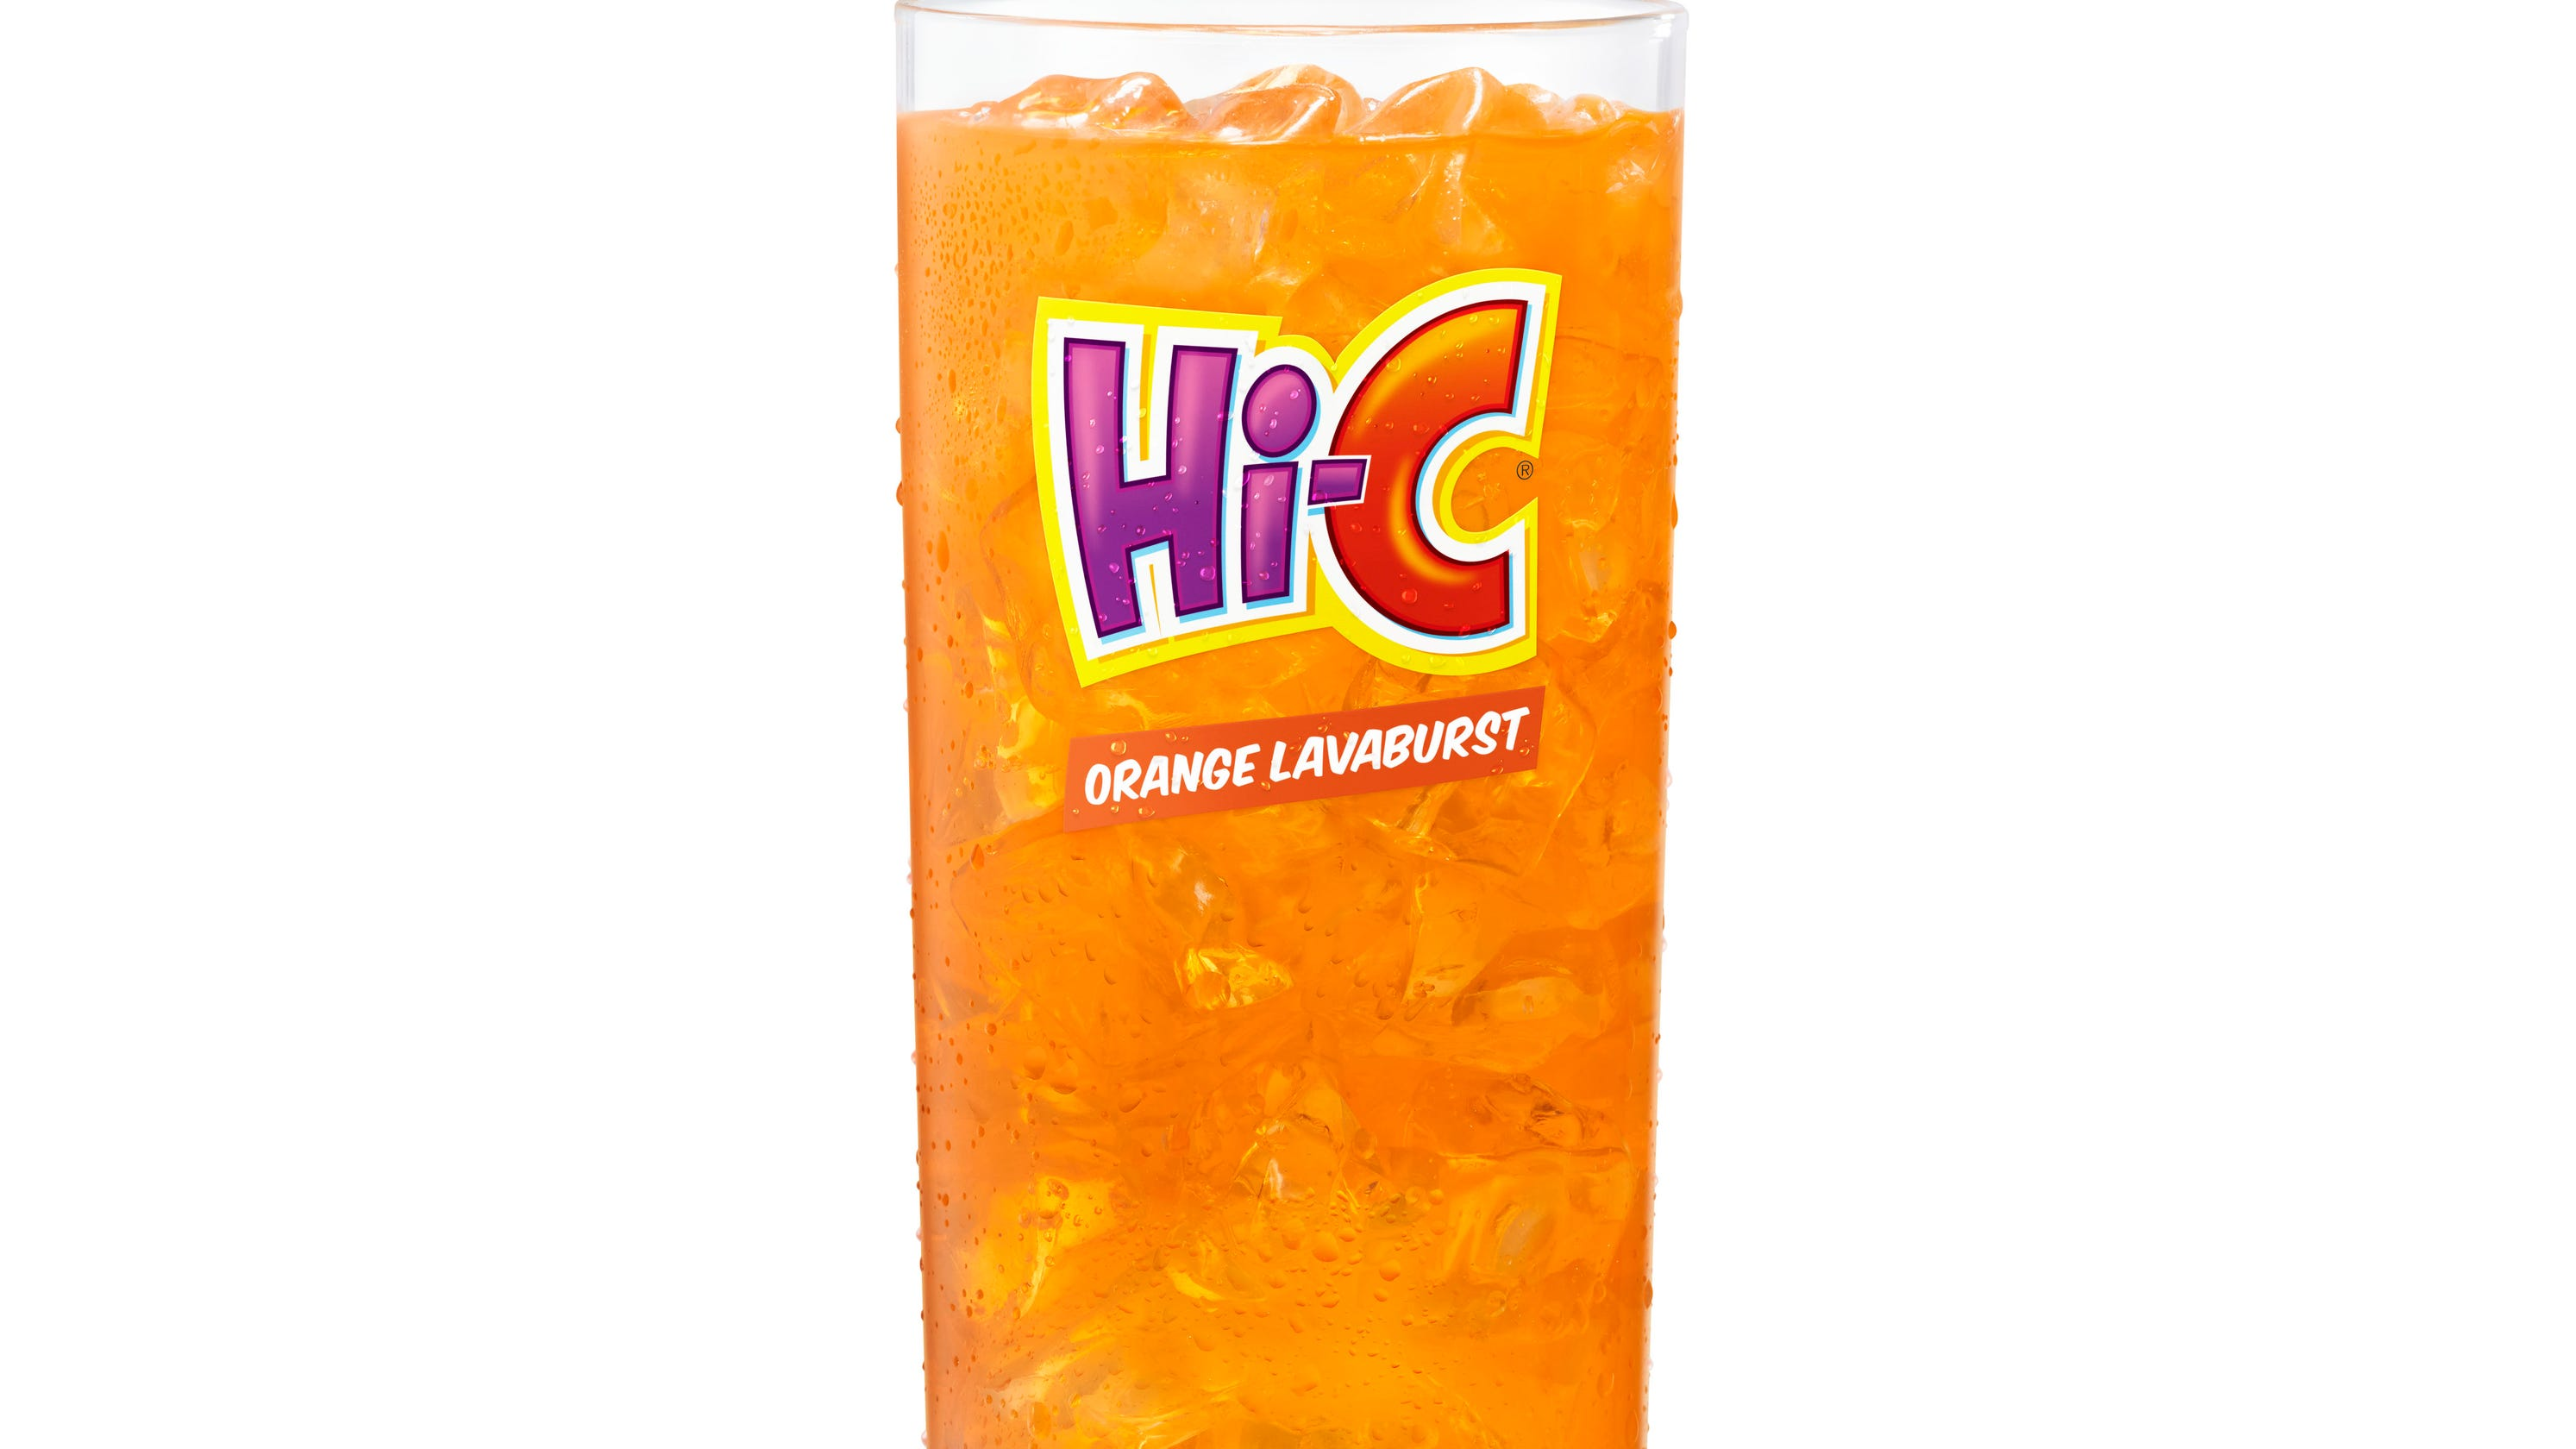 McDonald's bringing back iconic Hi-C Orange Lavaburst. Find out when you can get it. - USA TODAY